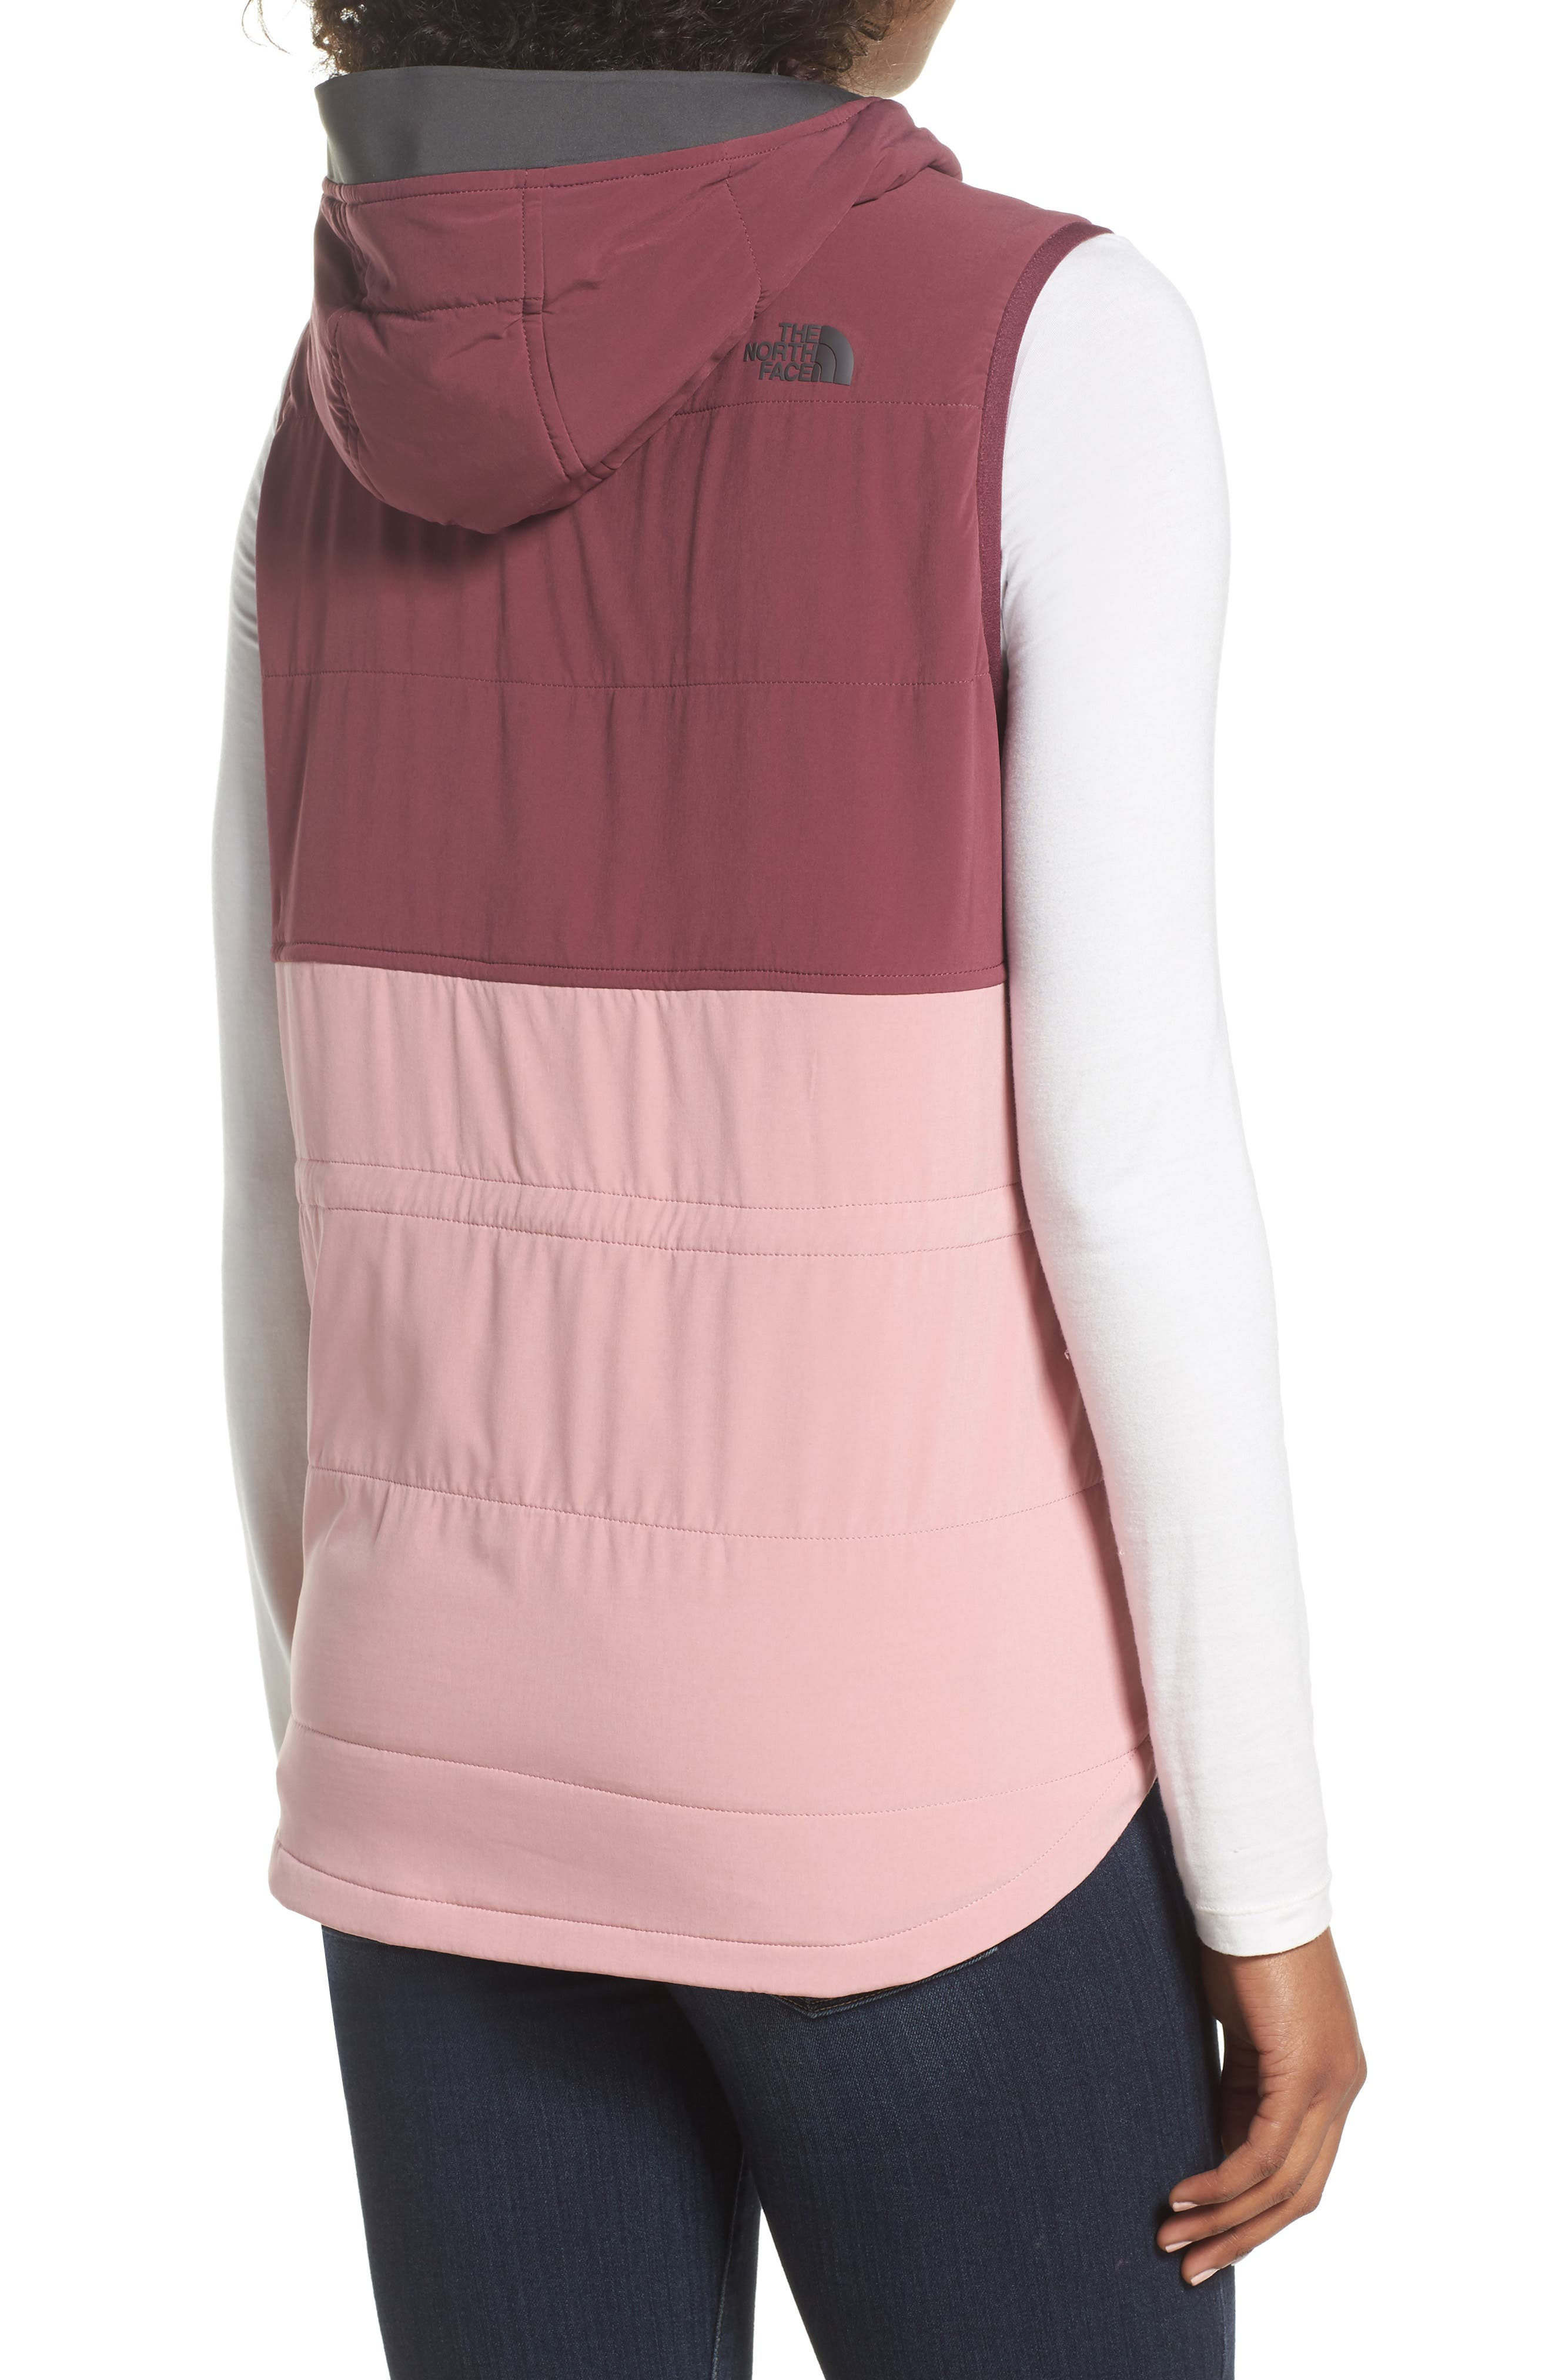 Mountain Sweatshirt Insulated Hooded Vest,                             Alternate thumbnail 8, color,